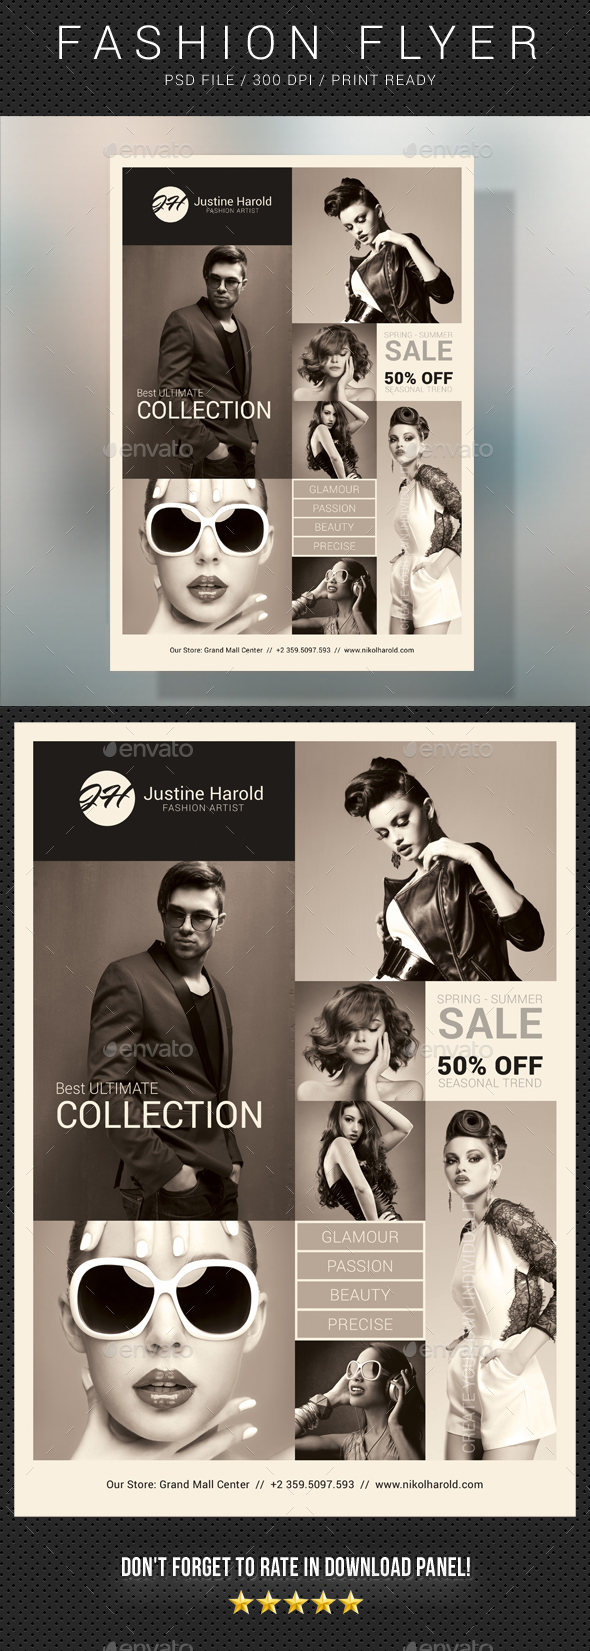 Fashion Flyer 05 - Commerce Flyers